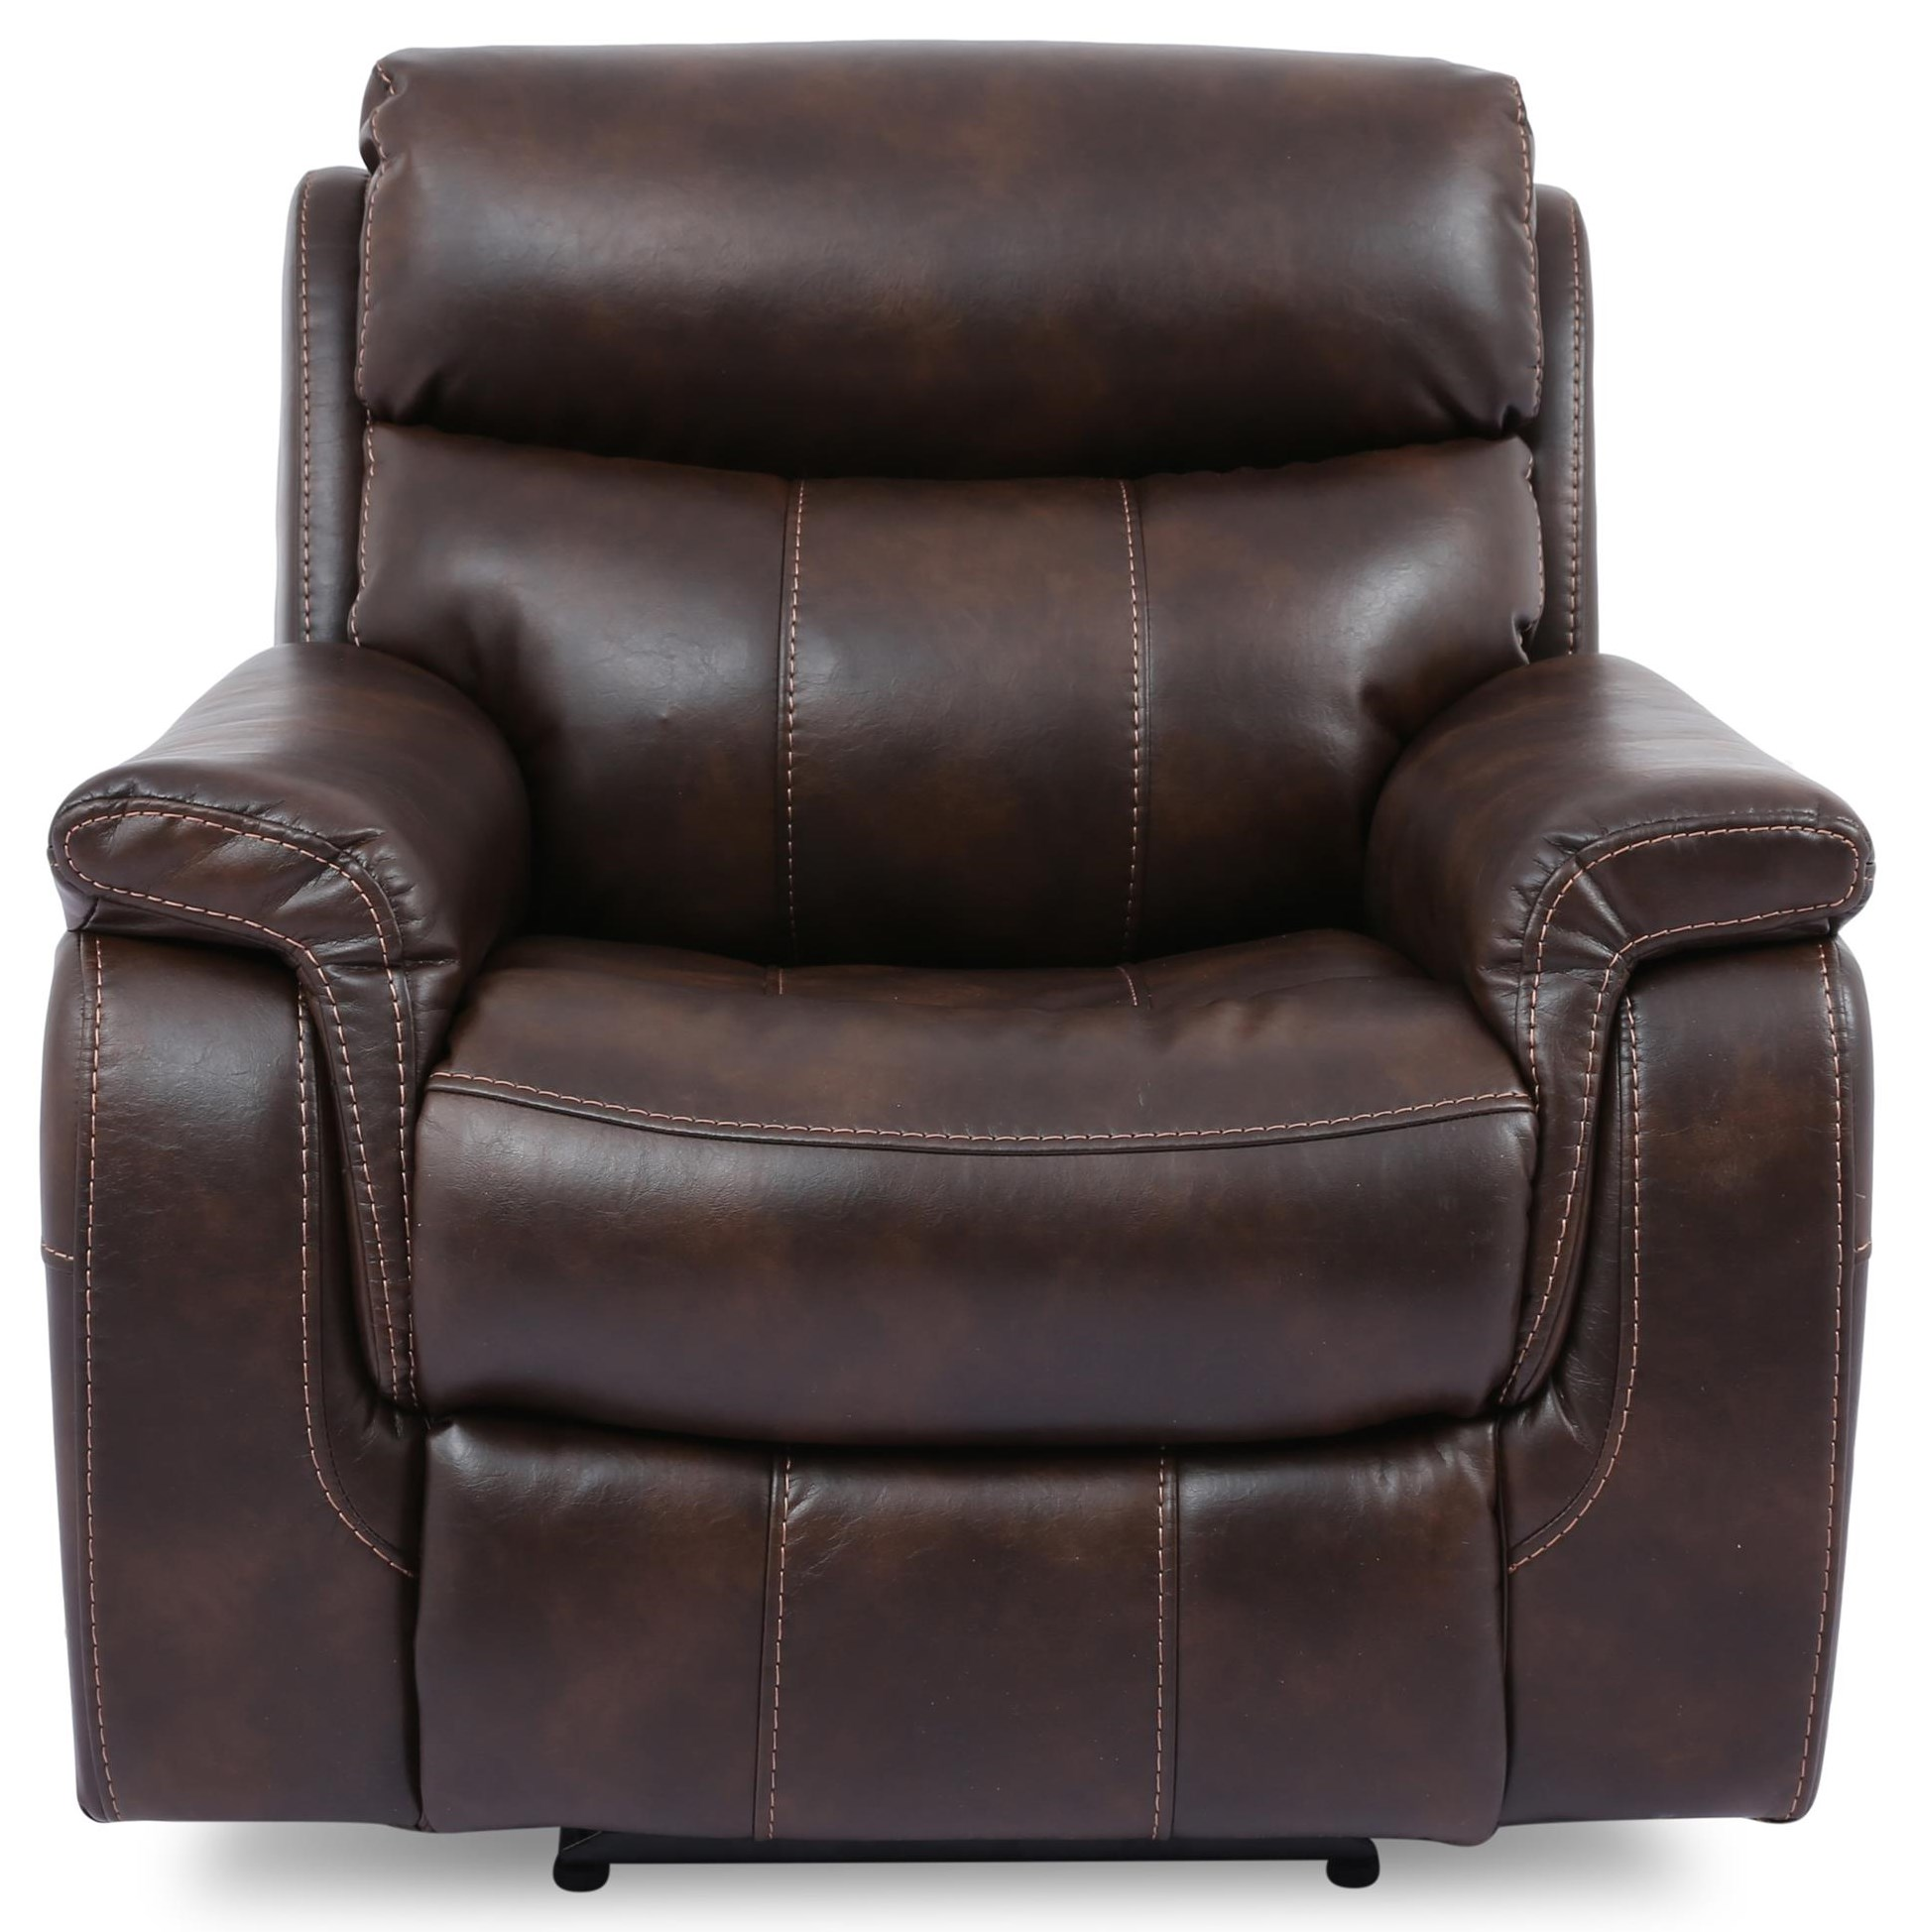 9020 Recliners Leather Match Power Headrest Recliner by Cheers at Sam Levitz Furniture